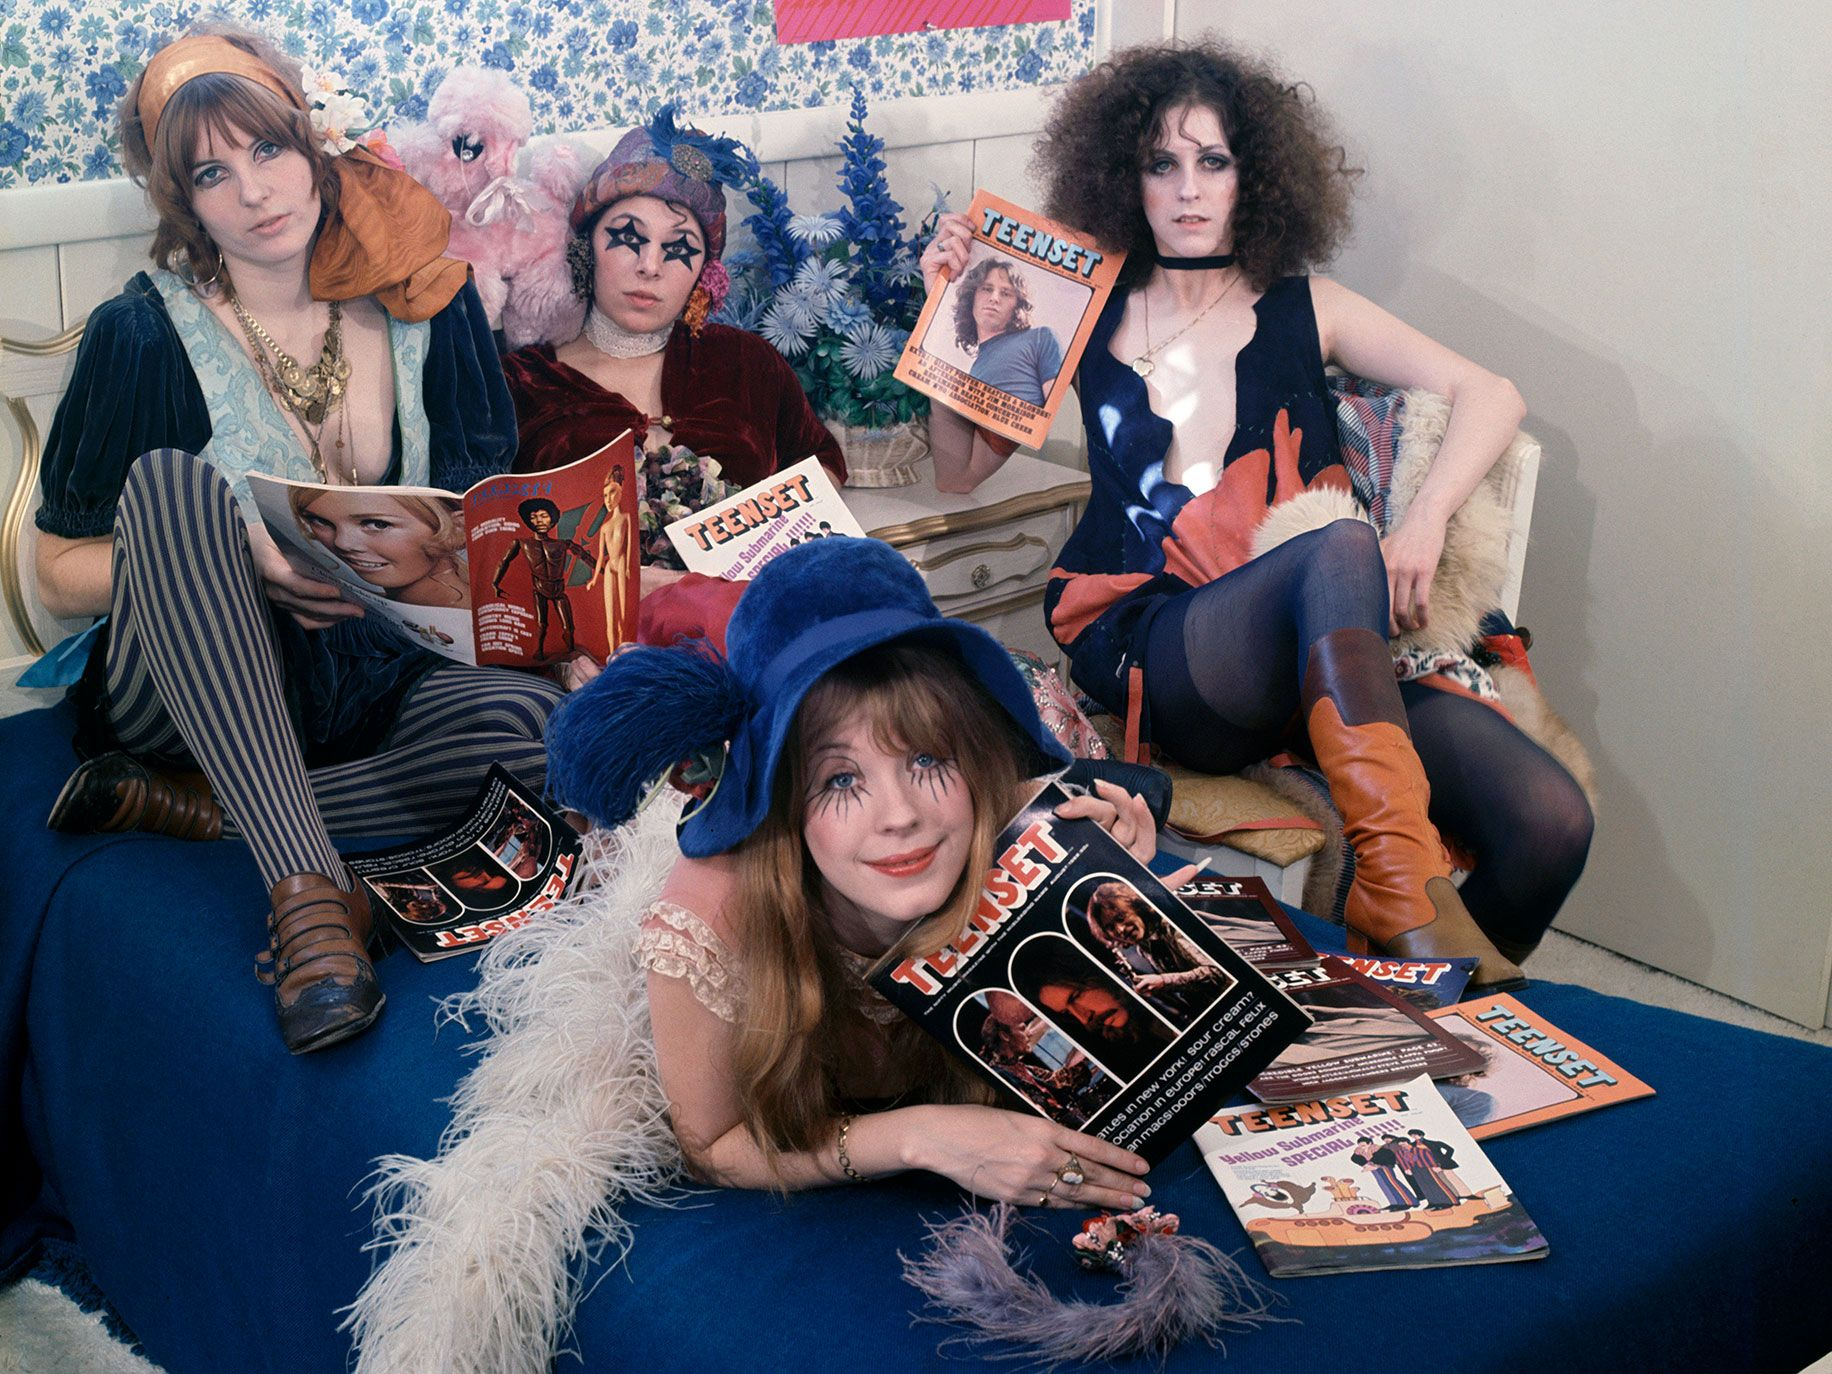 Pop group The GTOs (Girls Together Outrageously) pose for a Teenset magazine cover photo in 1969. Clockwise from top left: Miss Cynderella, Miss Sandra, Miss Christine and Miss Pamela.